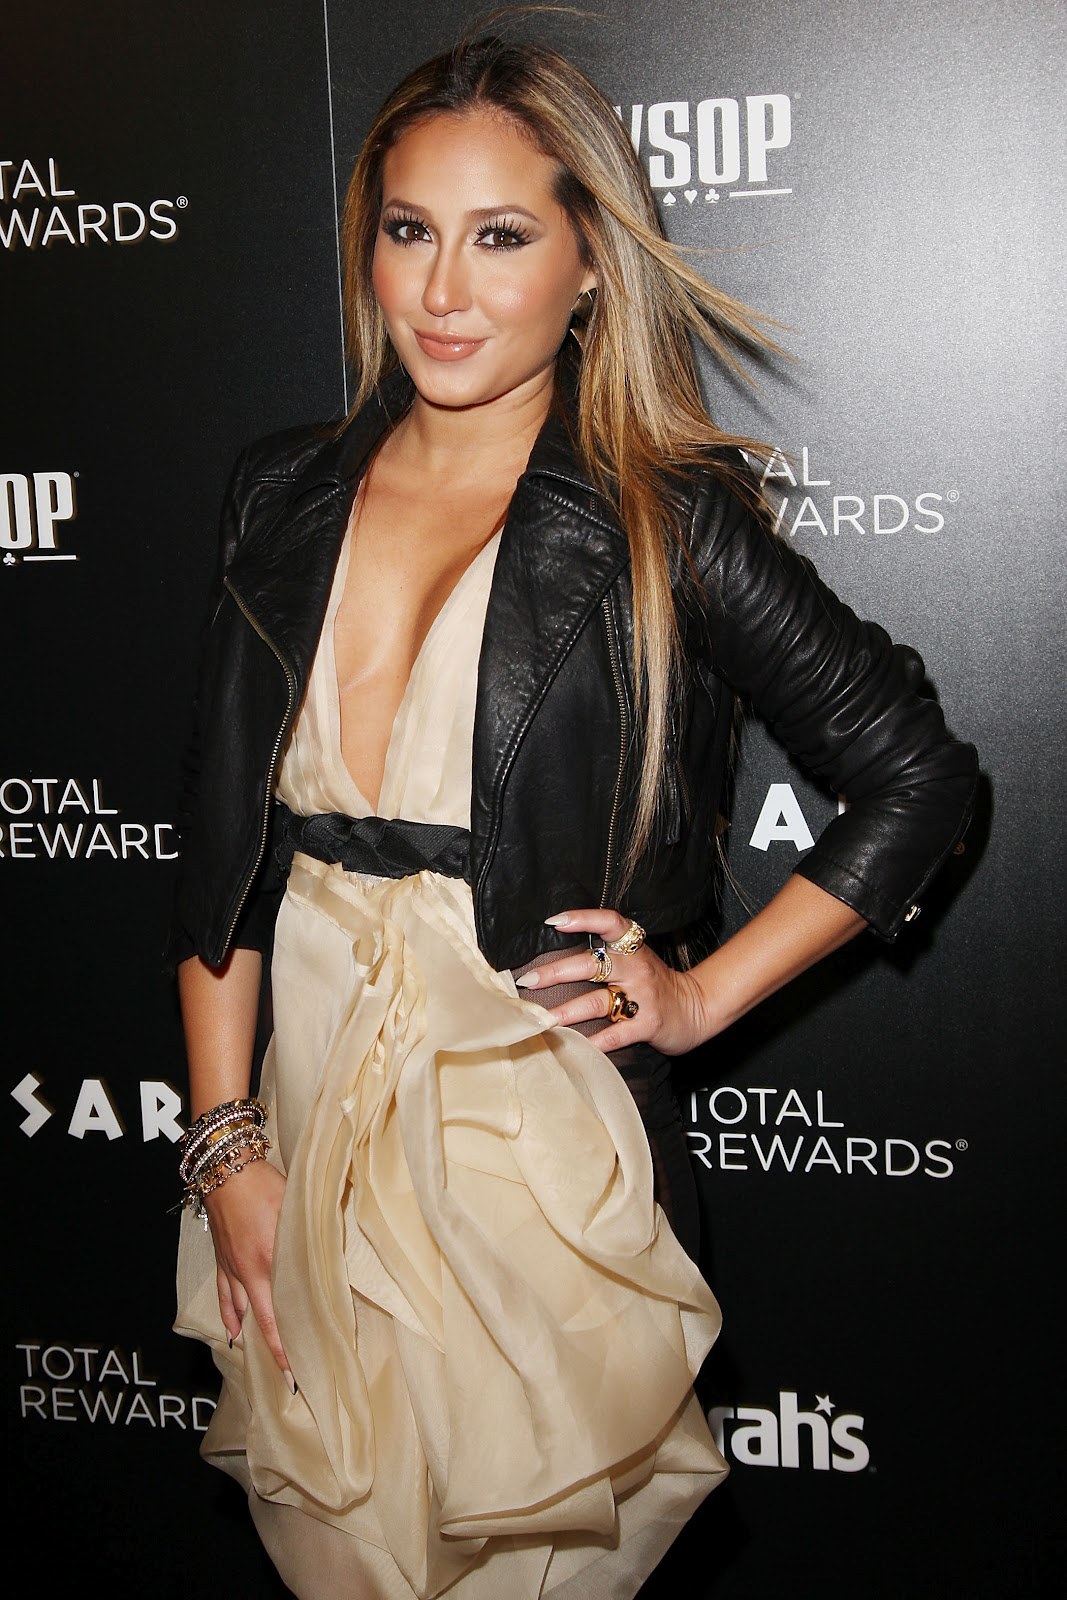 Adrienne Bailon Flashing The See Through Dress Pantyless